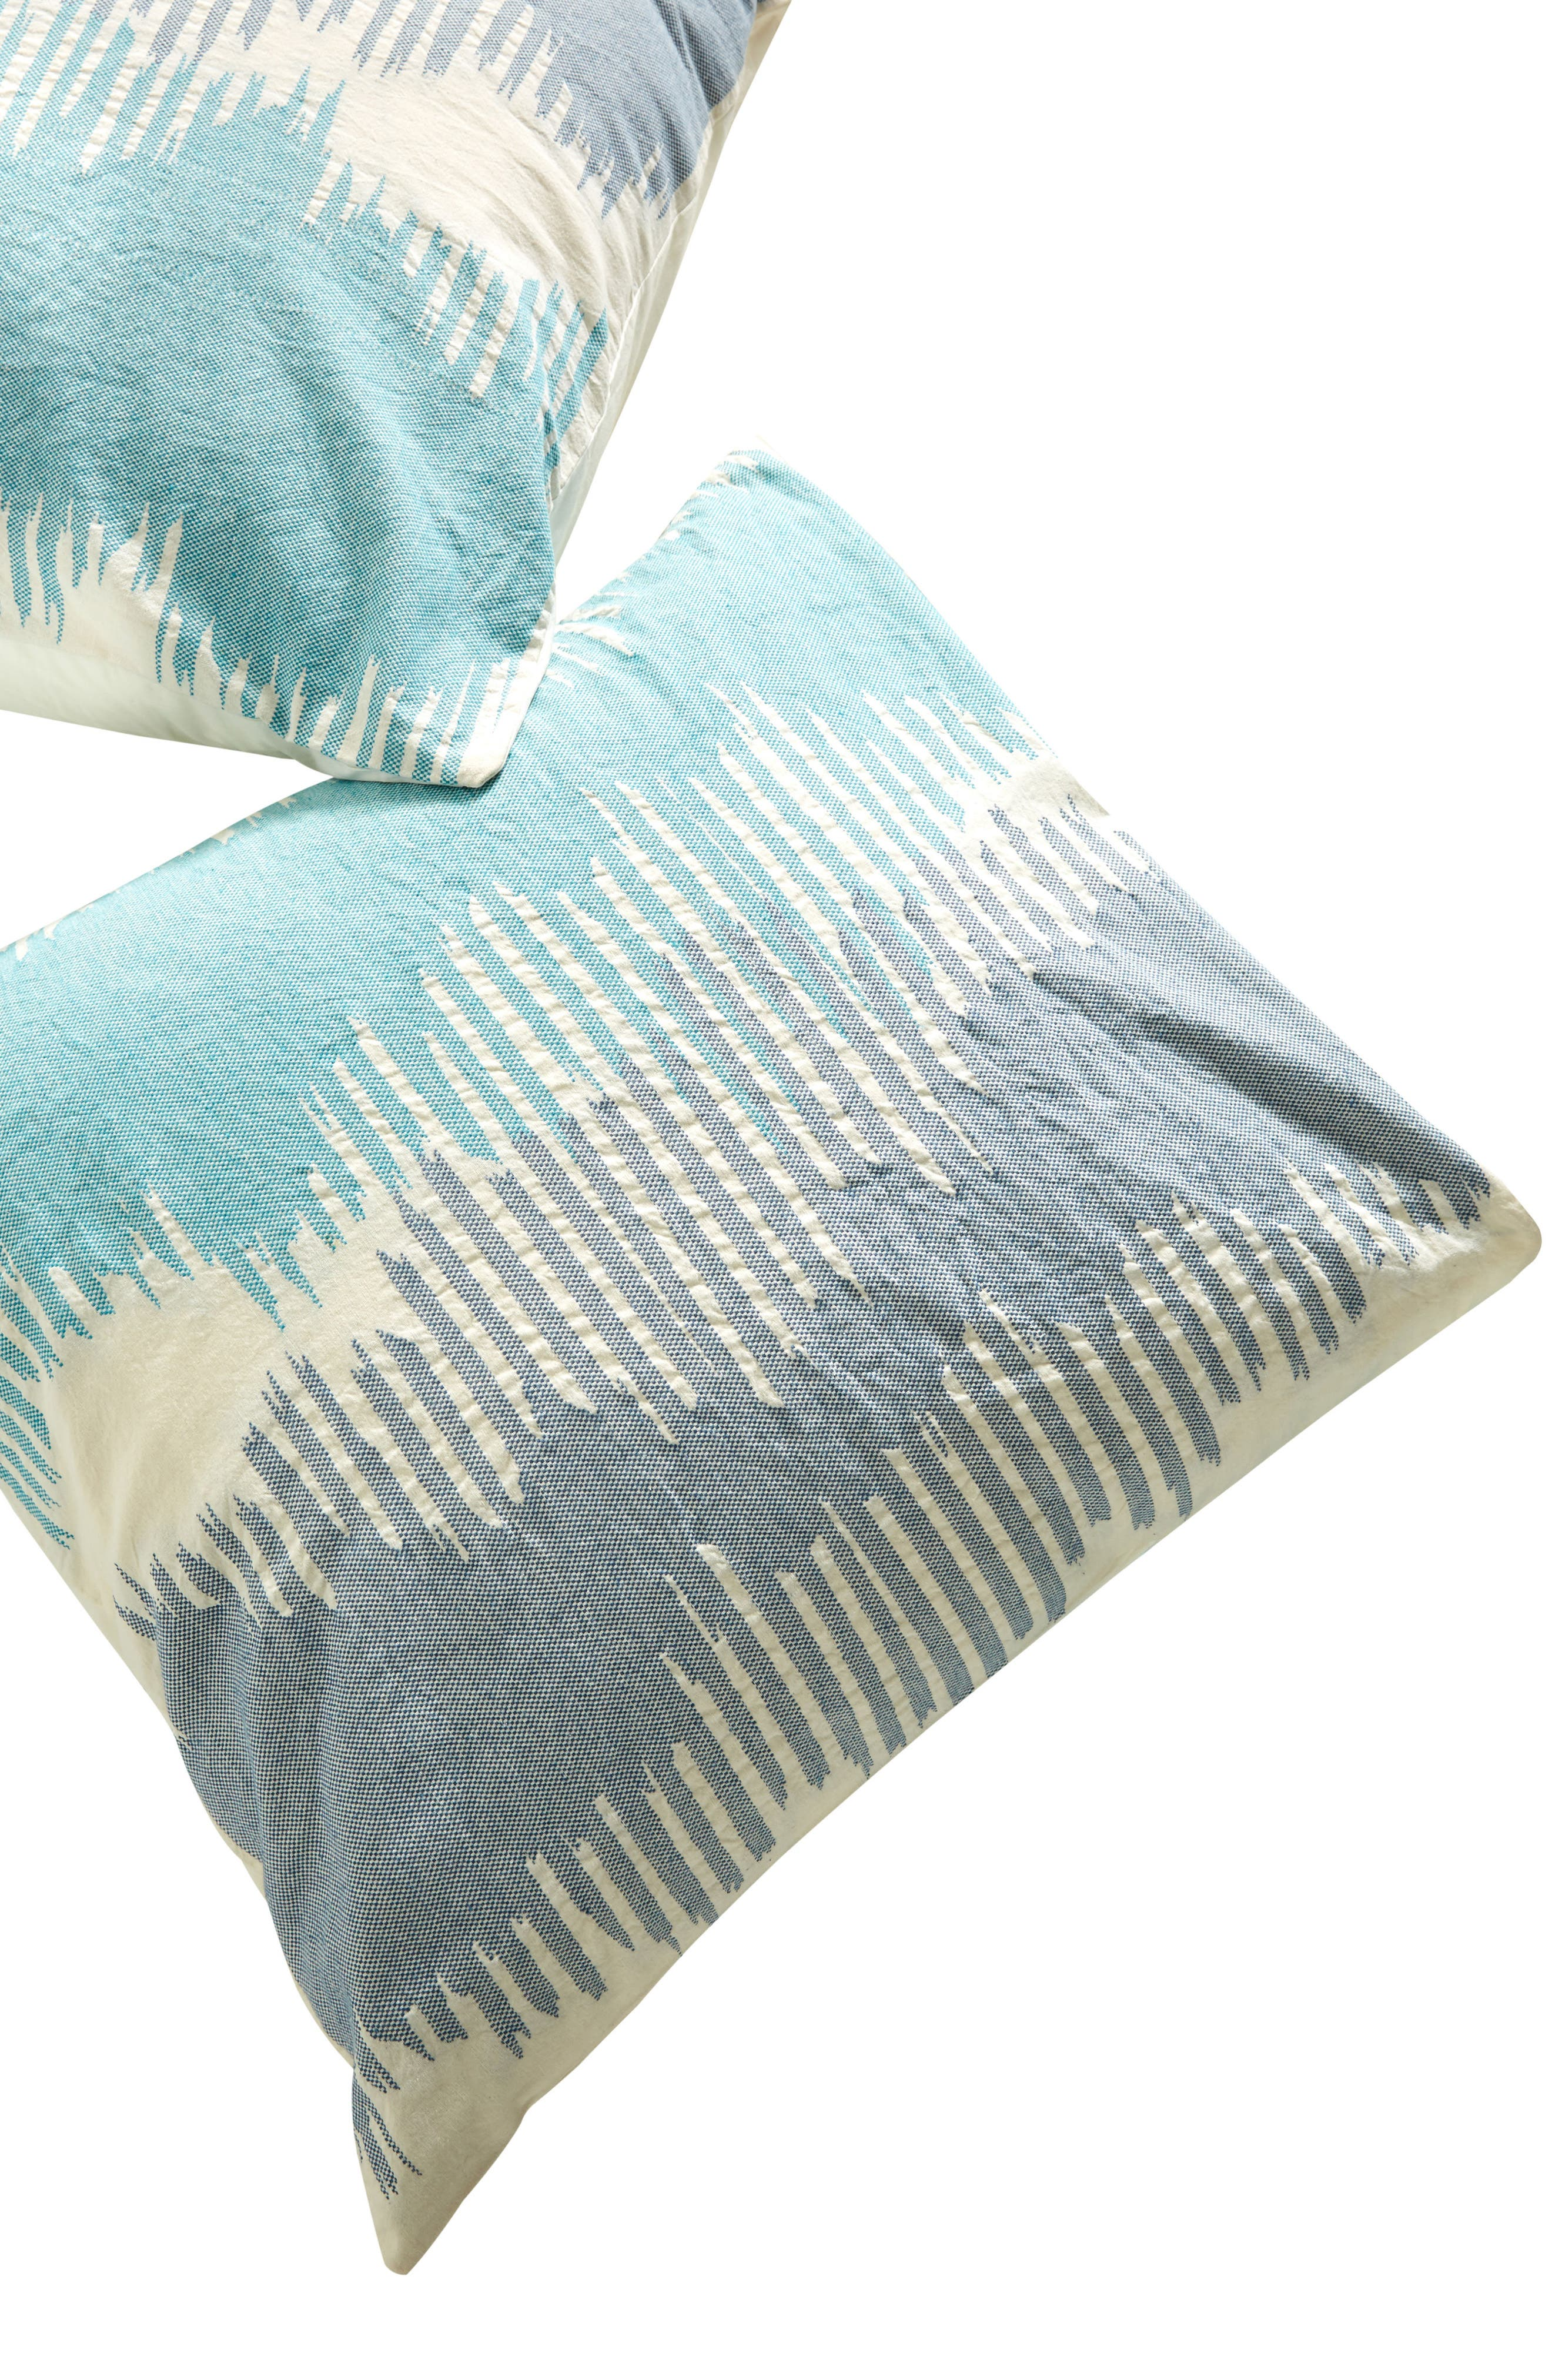 Woven Calera Euro Sham,                             Alternate thumbnail 2, color,                             Blue